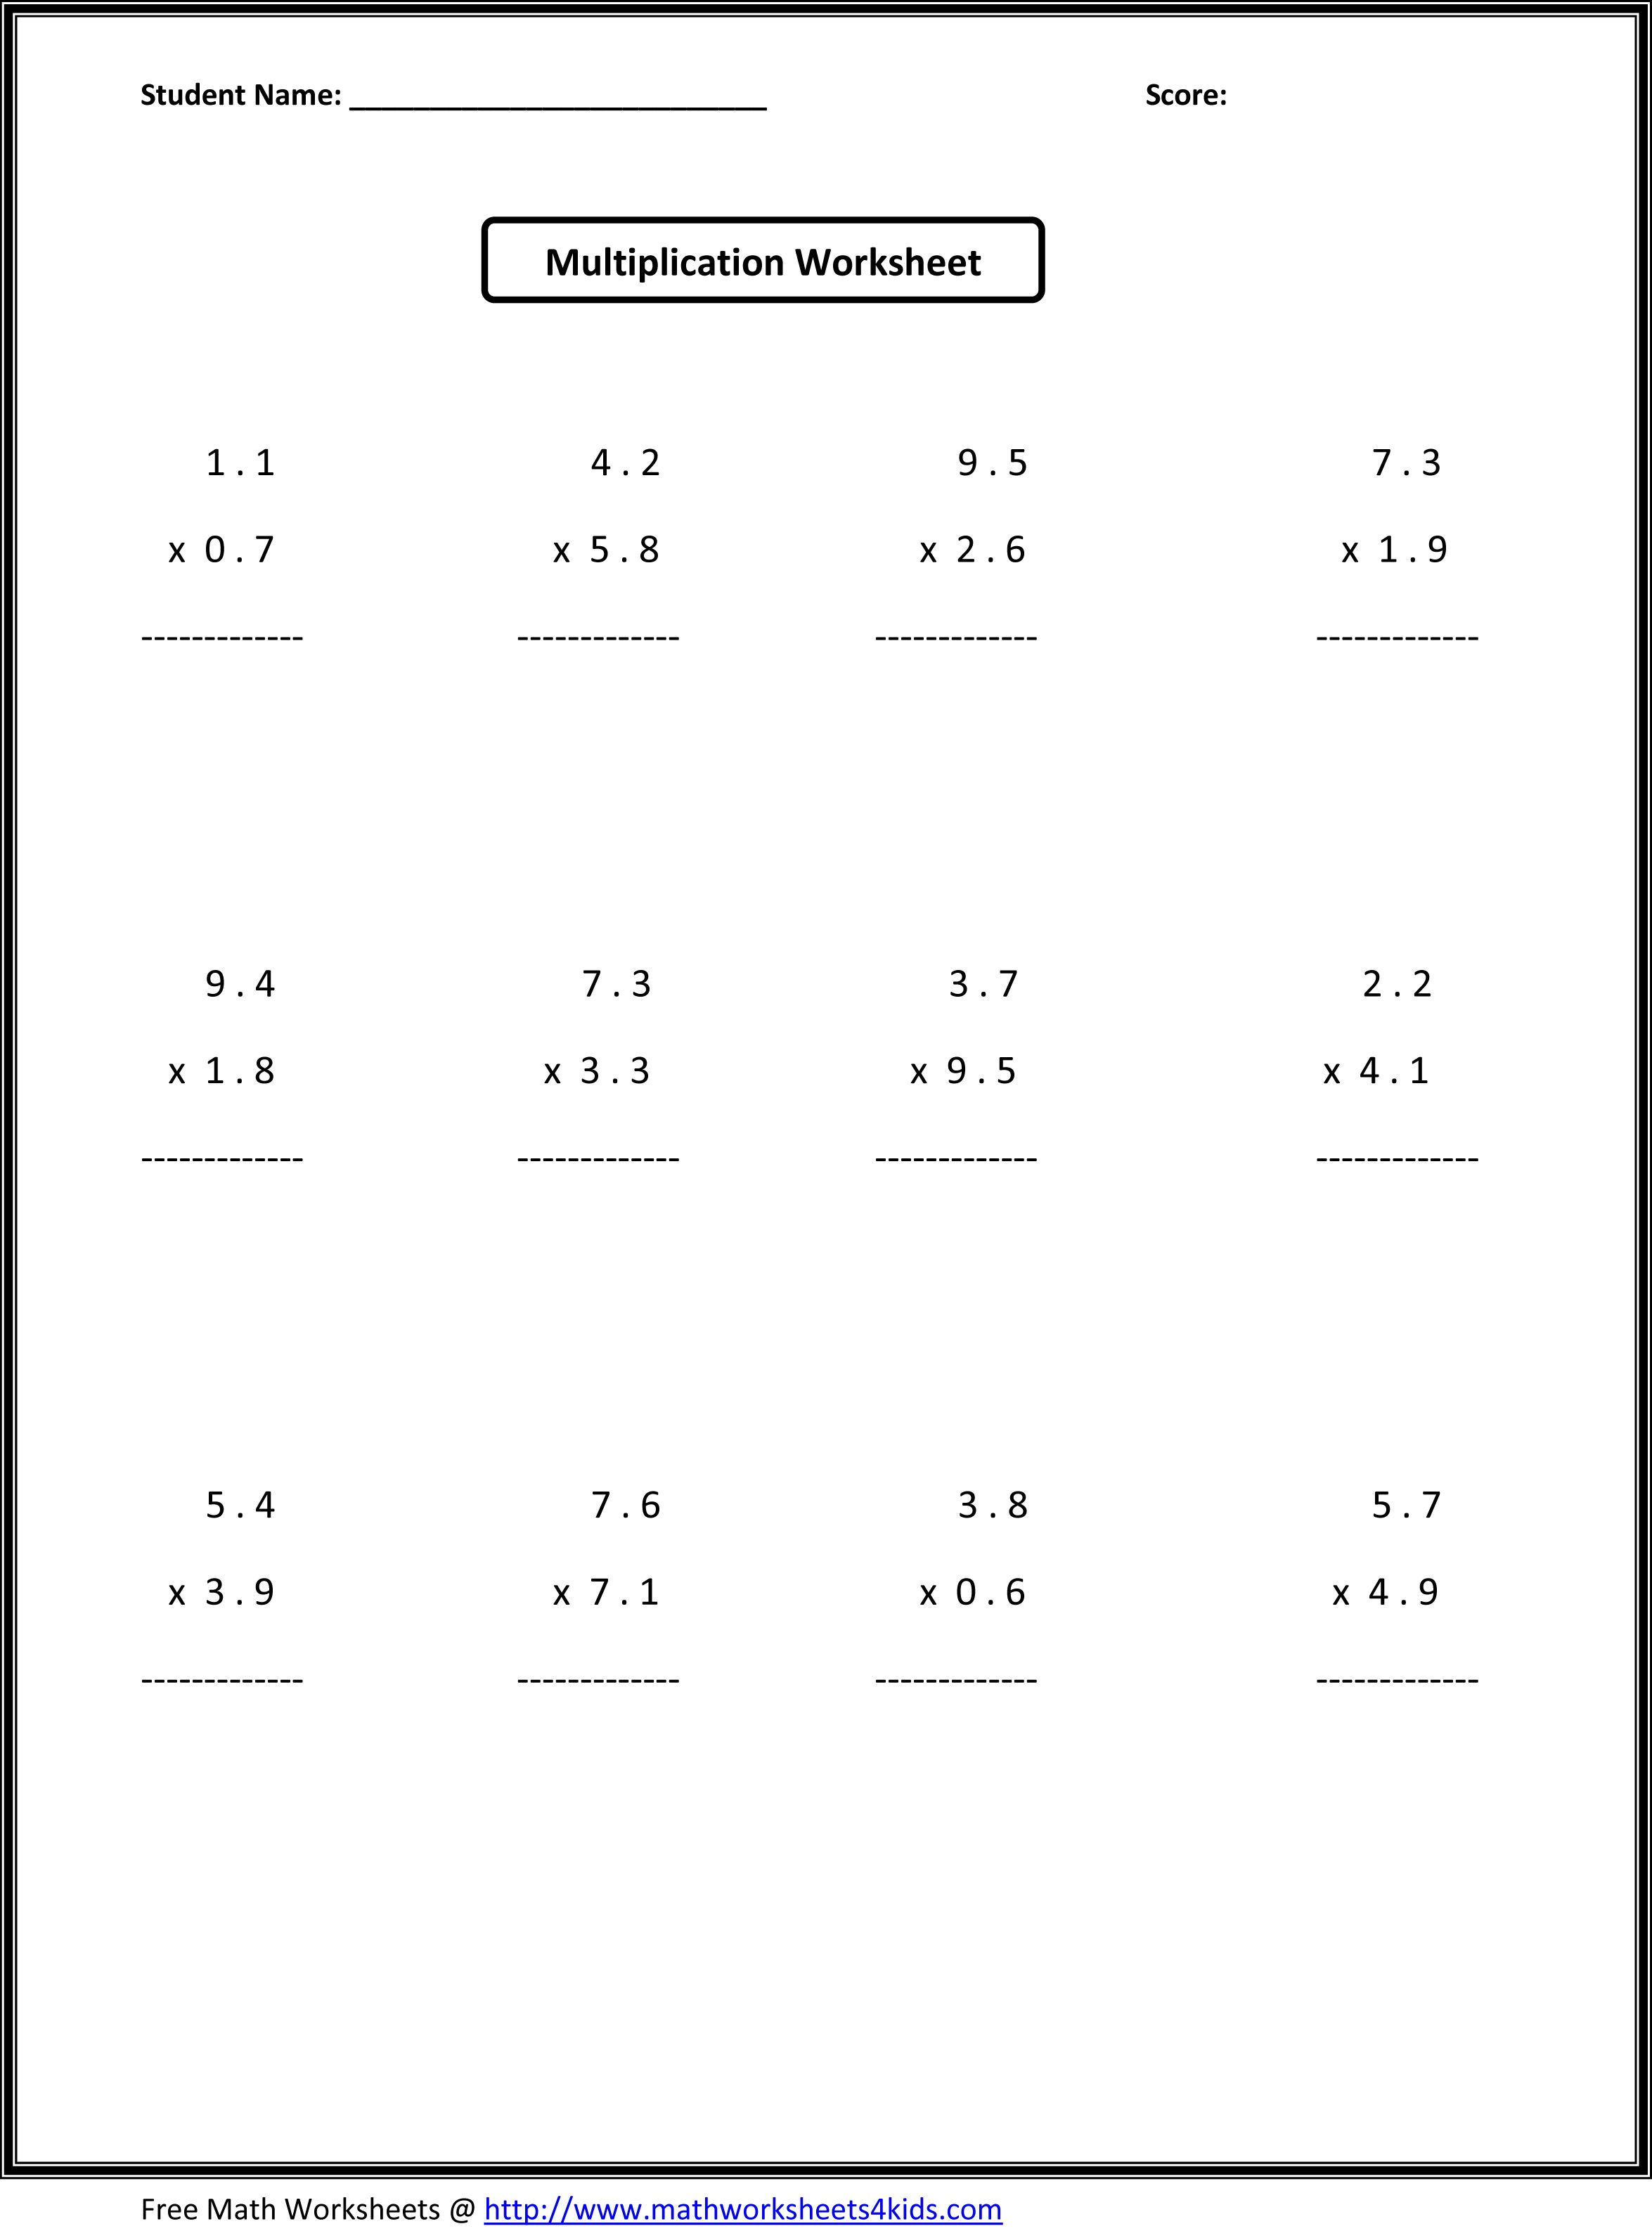 Absolute Value Worksheets Free: 7th grade math worksheets   value worksheets absolute value    ,